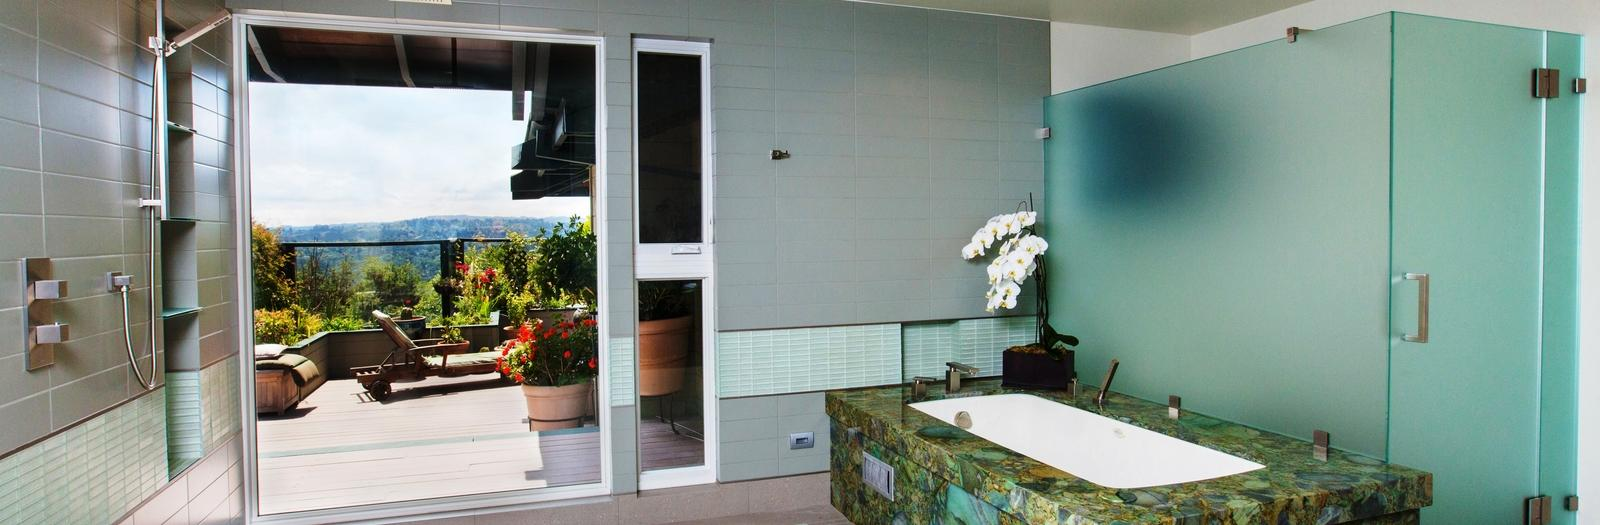 Modern Bathroom with ceiling mount shower head